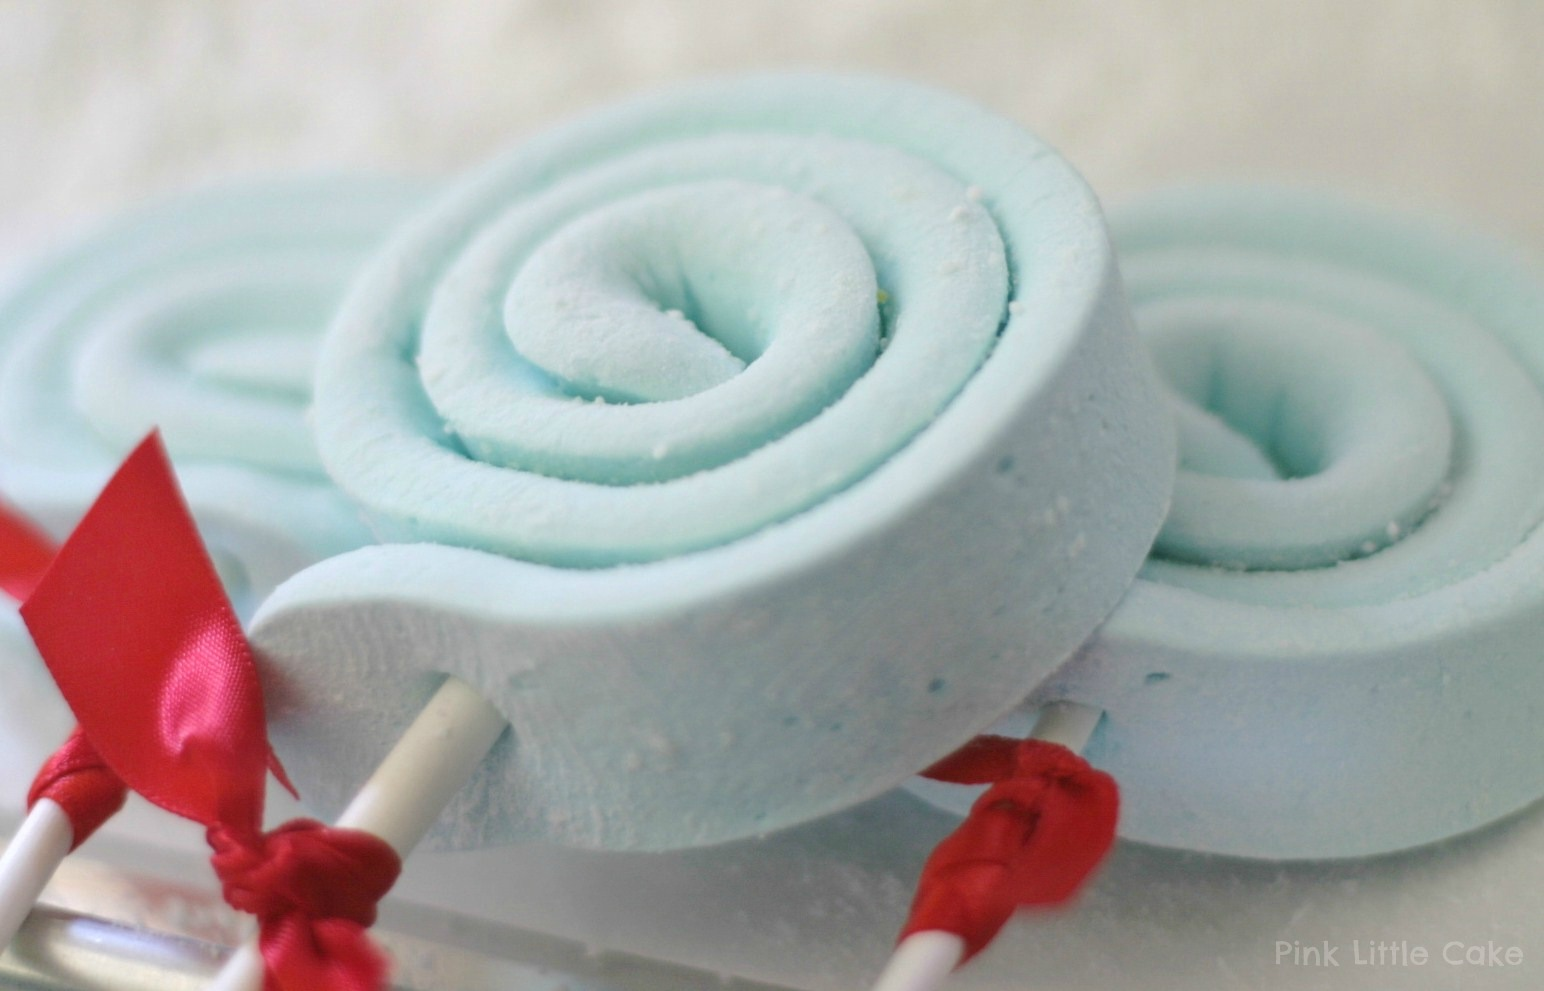 How To Make Fondant Icing Homemade Marshmallow Cake